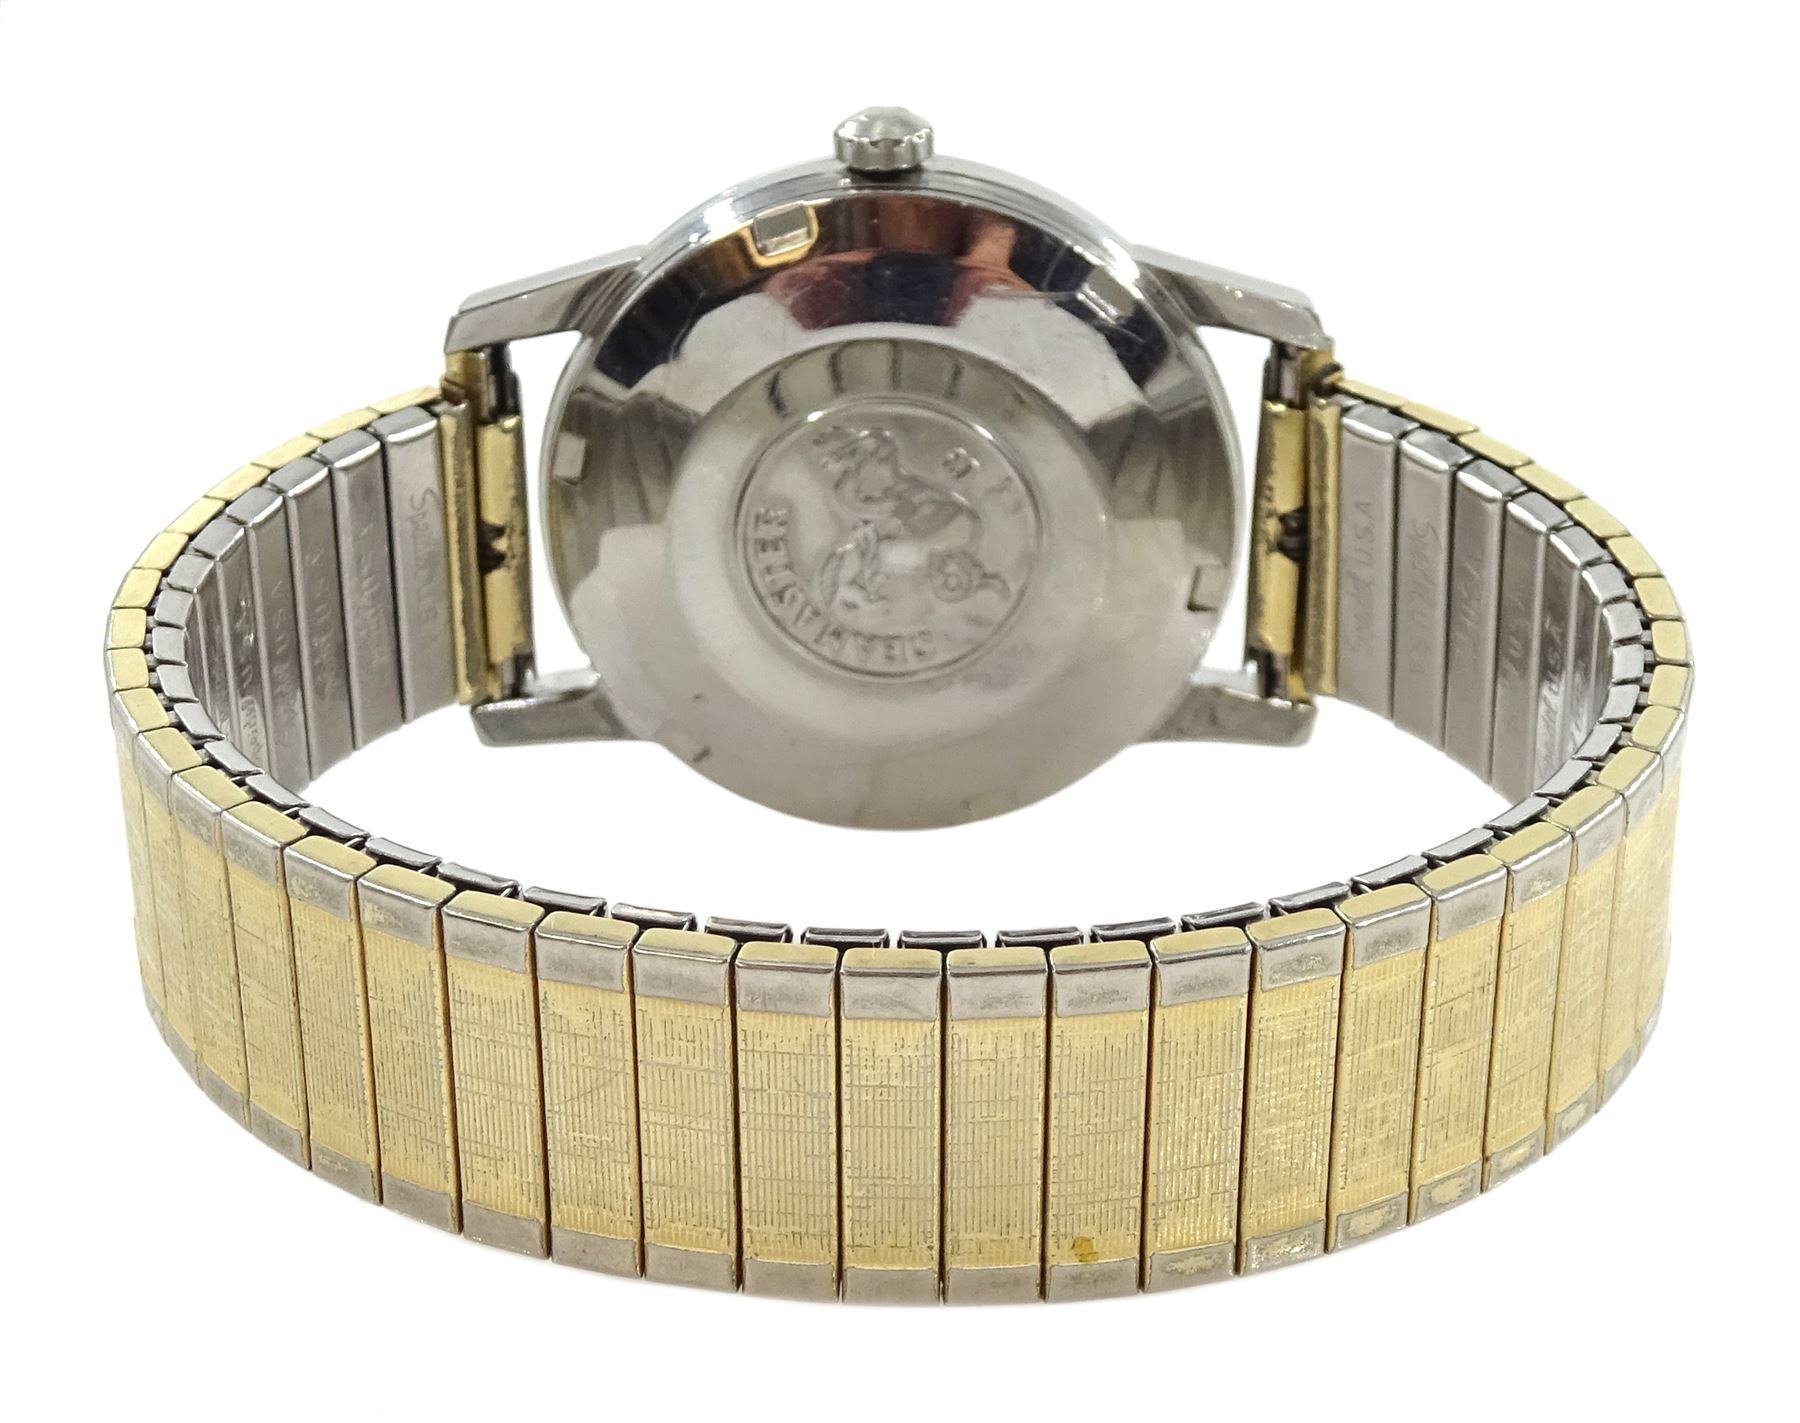 Omega Seamaster automatic gentleman's stainless steel wristwatch - Image 3 of 3